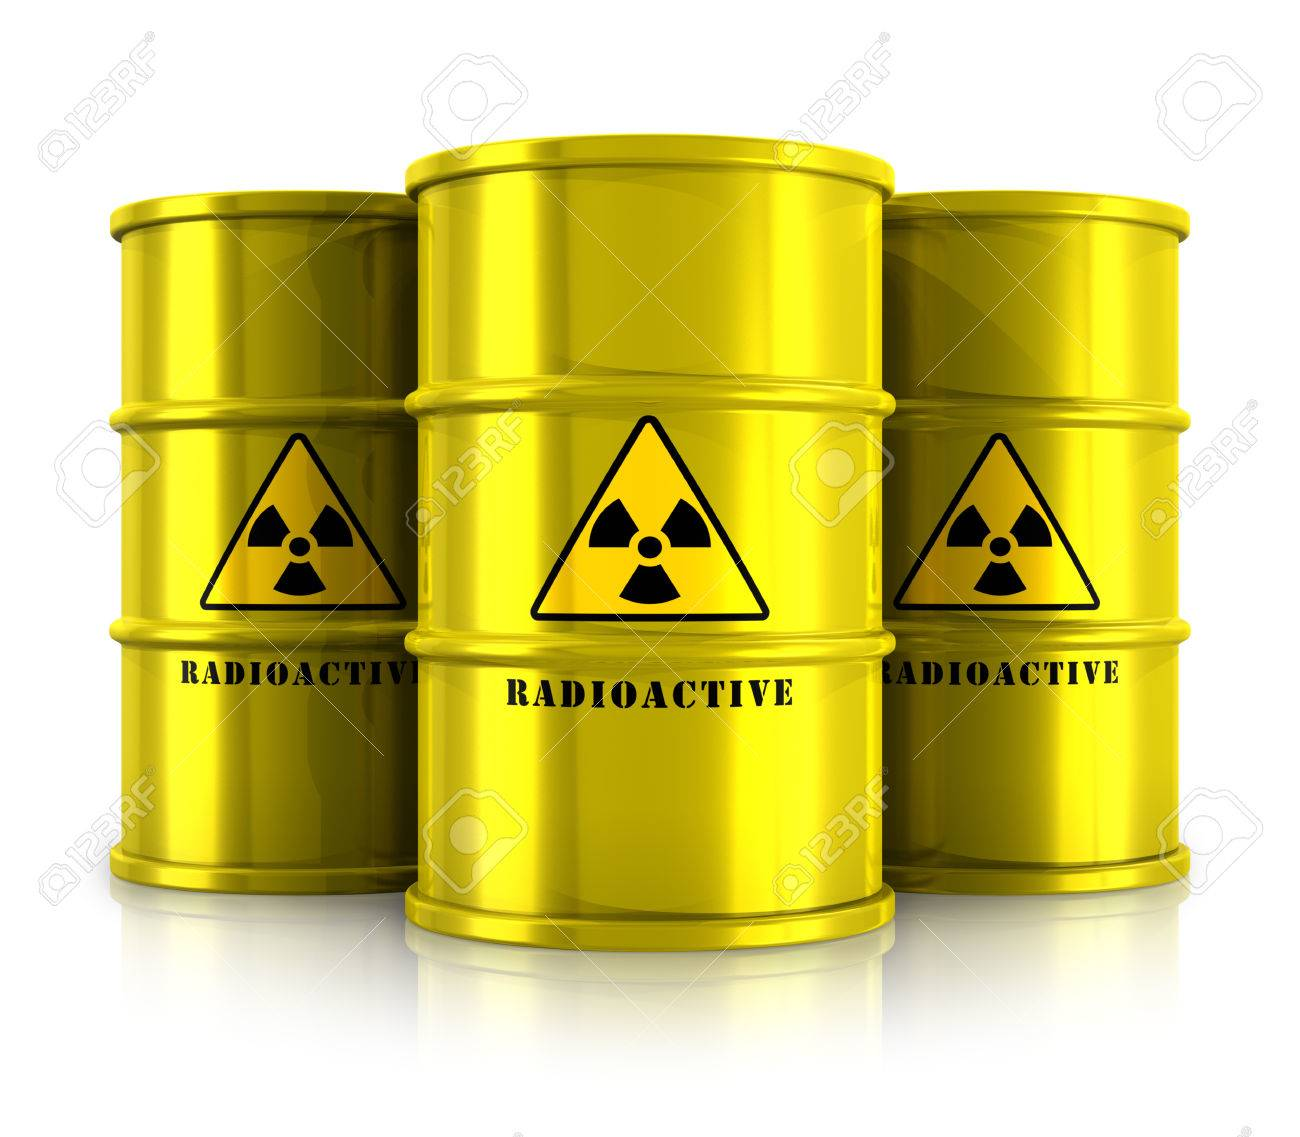 Creative abstract nuclear power fuel manufacturing, disposal and utilization industry concept  group of yellow metal barrels, drums or containers with poison dangerous hazardous radioactive materials isolated on white background with reflection effect Stock Photo - 23499540